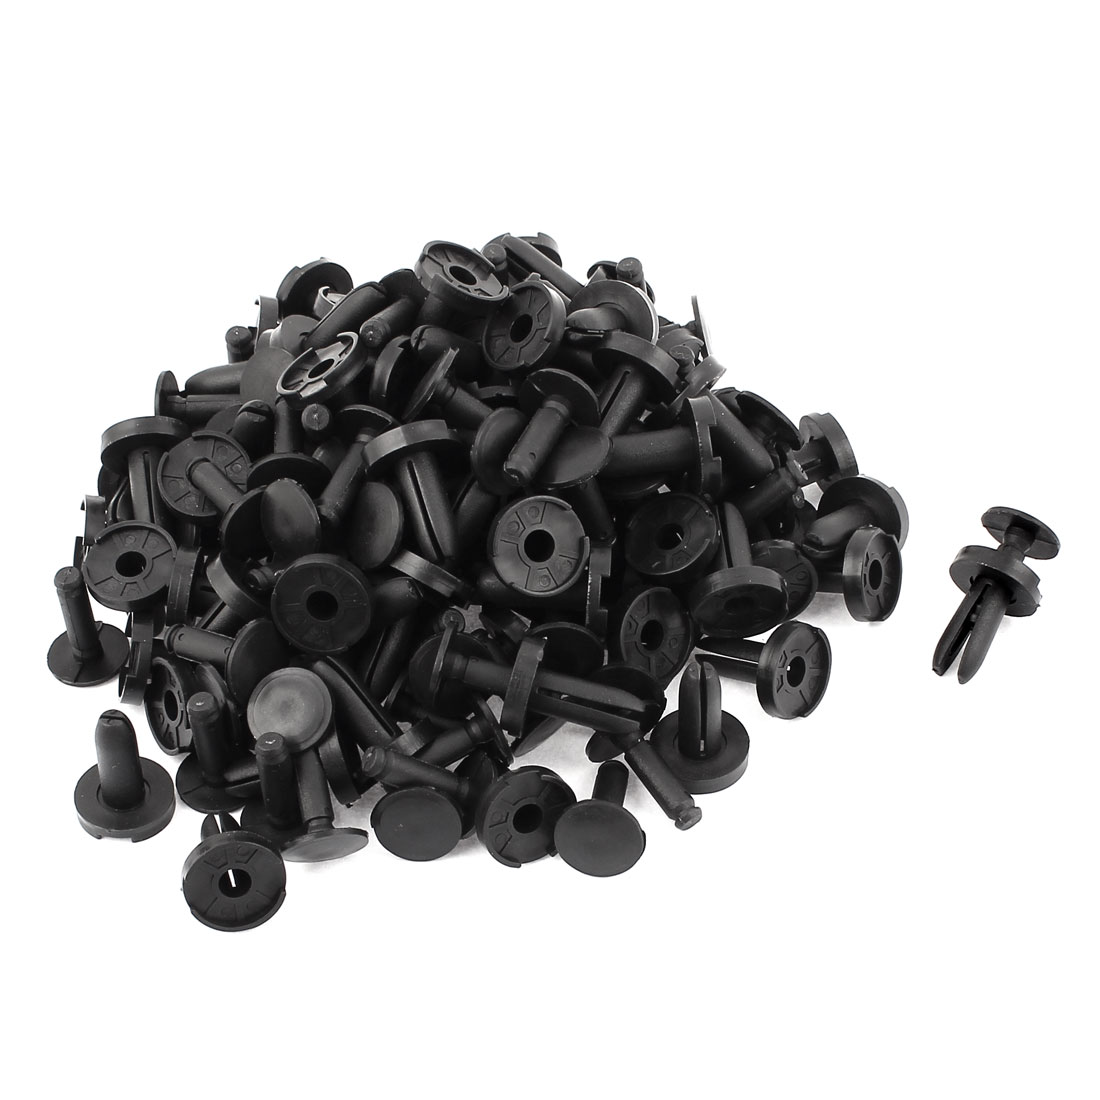 80Pcs Auto Car Door Panel Trim Fastener Side Moulding Plastic Clips Black